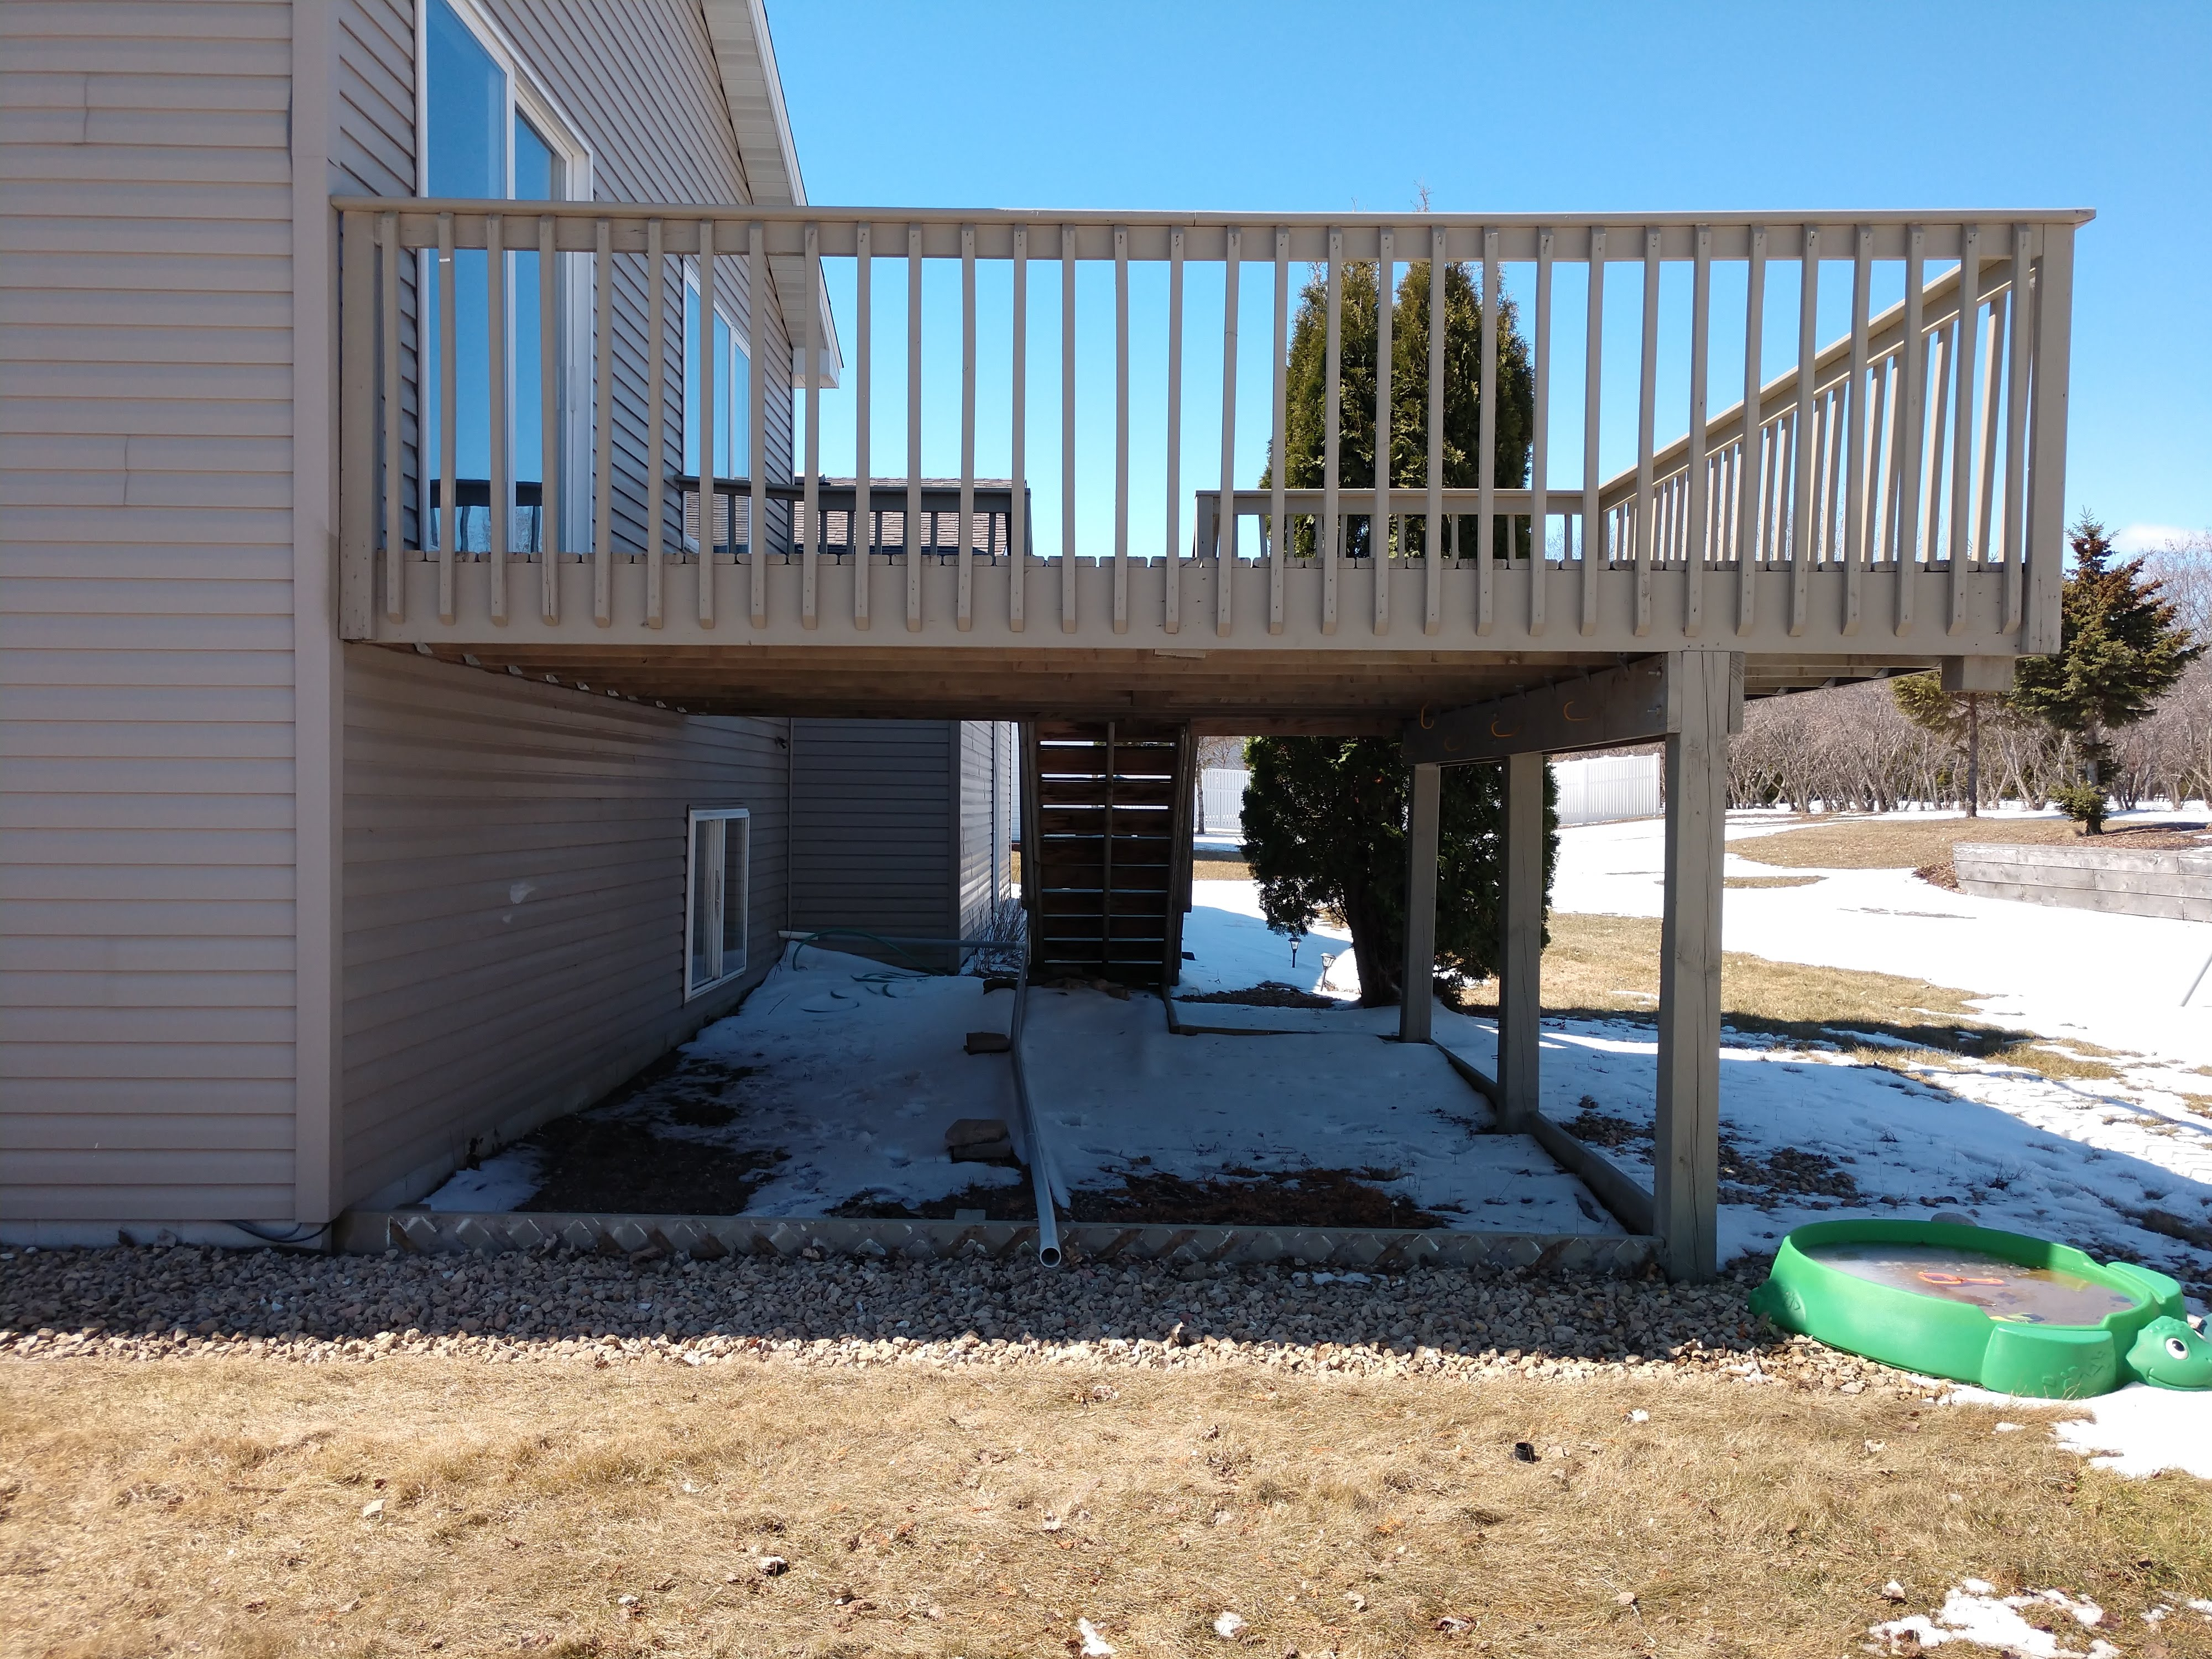 A recycled deck, improperly installed.